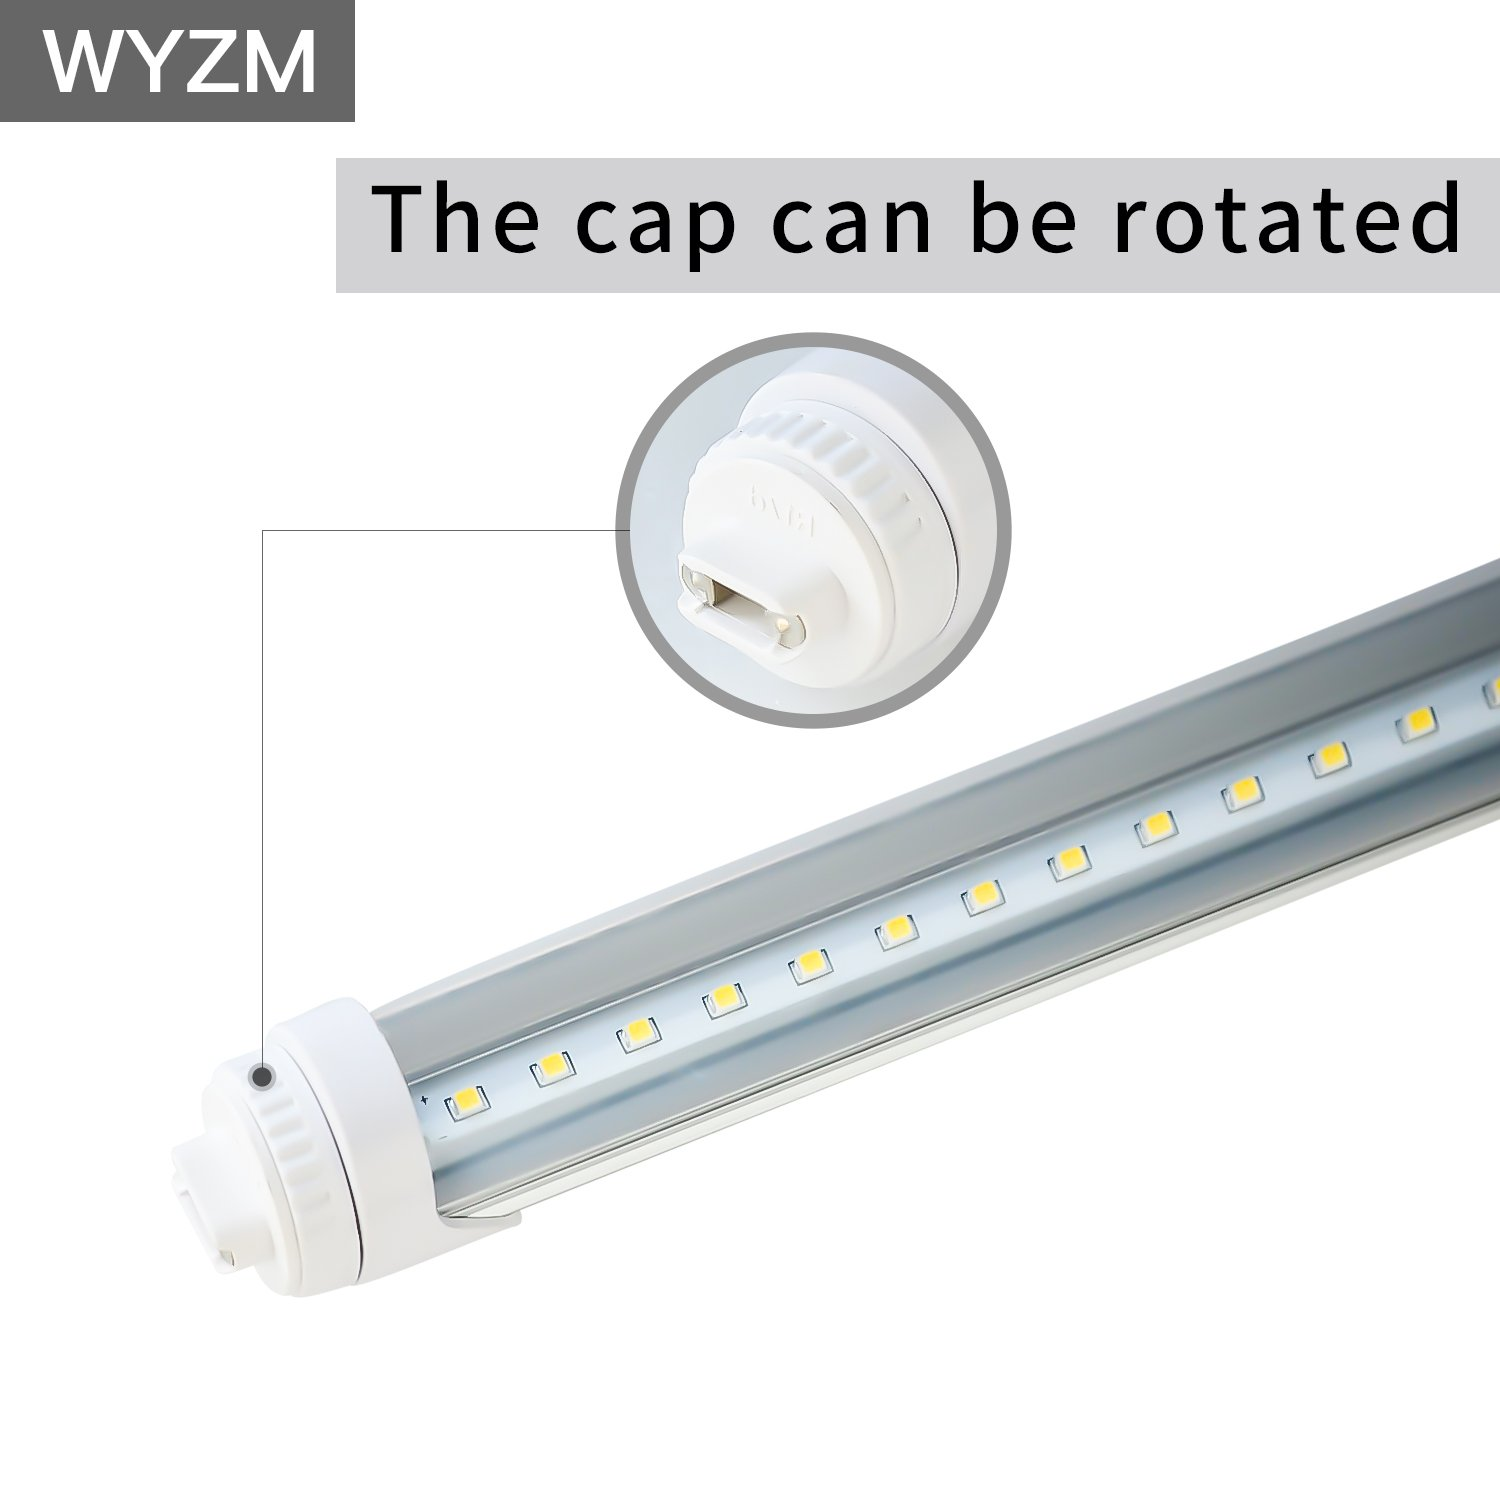 WYZM R17D 4FT 20W F48T12/CW/HO Straight T12 Fluorescent LED Tube Light Bulb for Vending Cooler Freezer Replacement Bulb (10-Pack 5500k) by WYZM (Image #4)